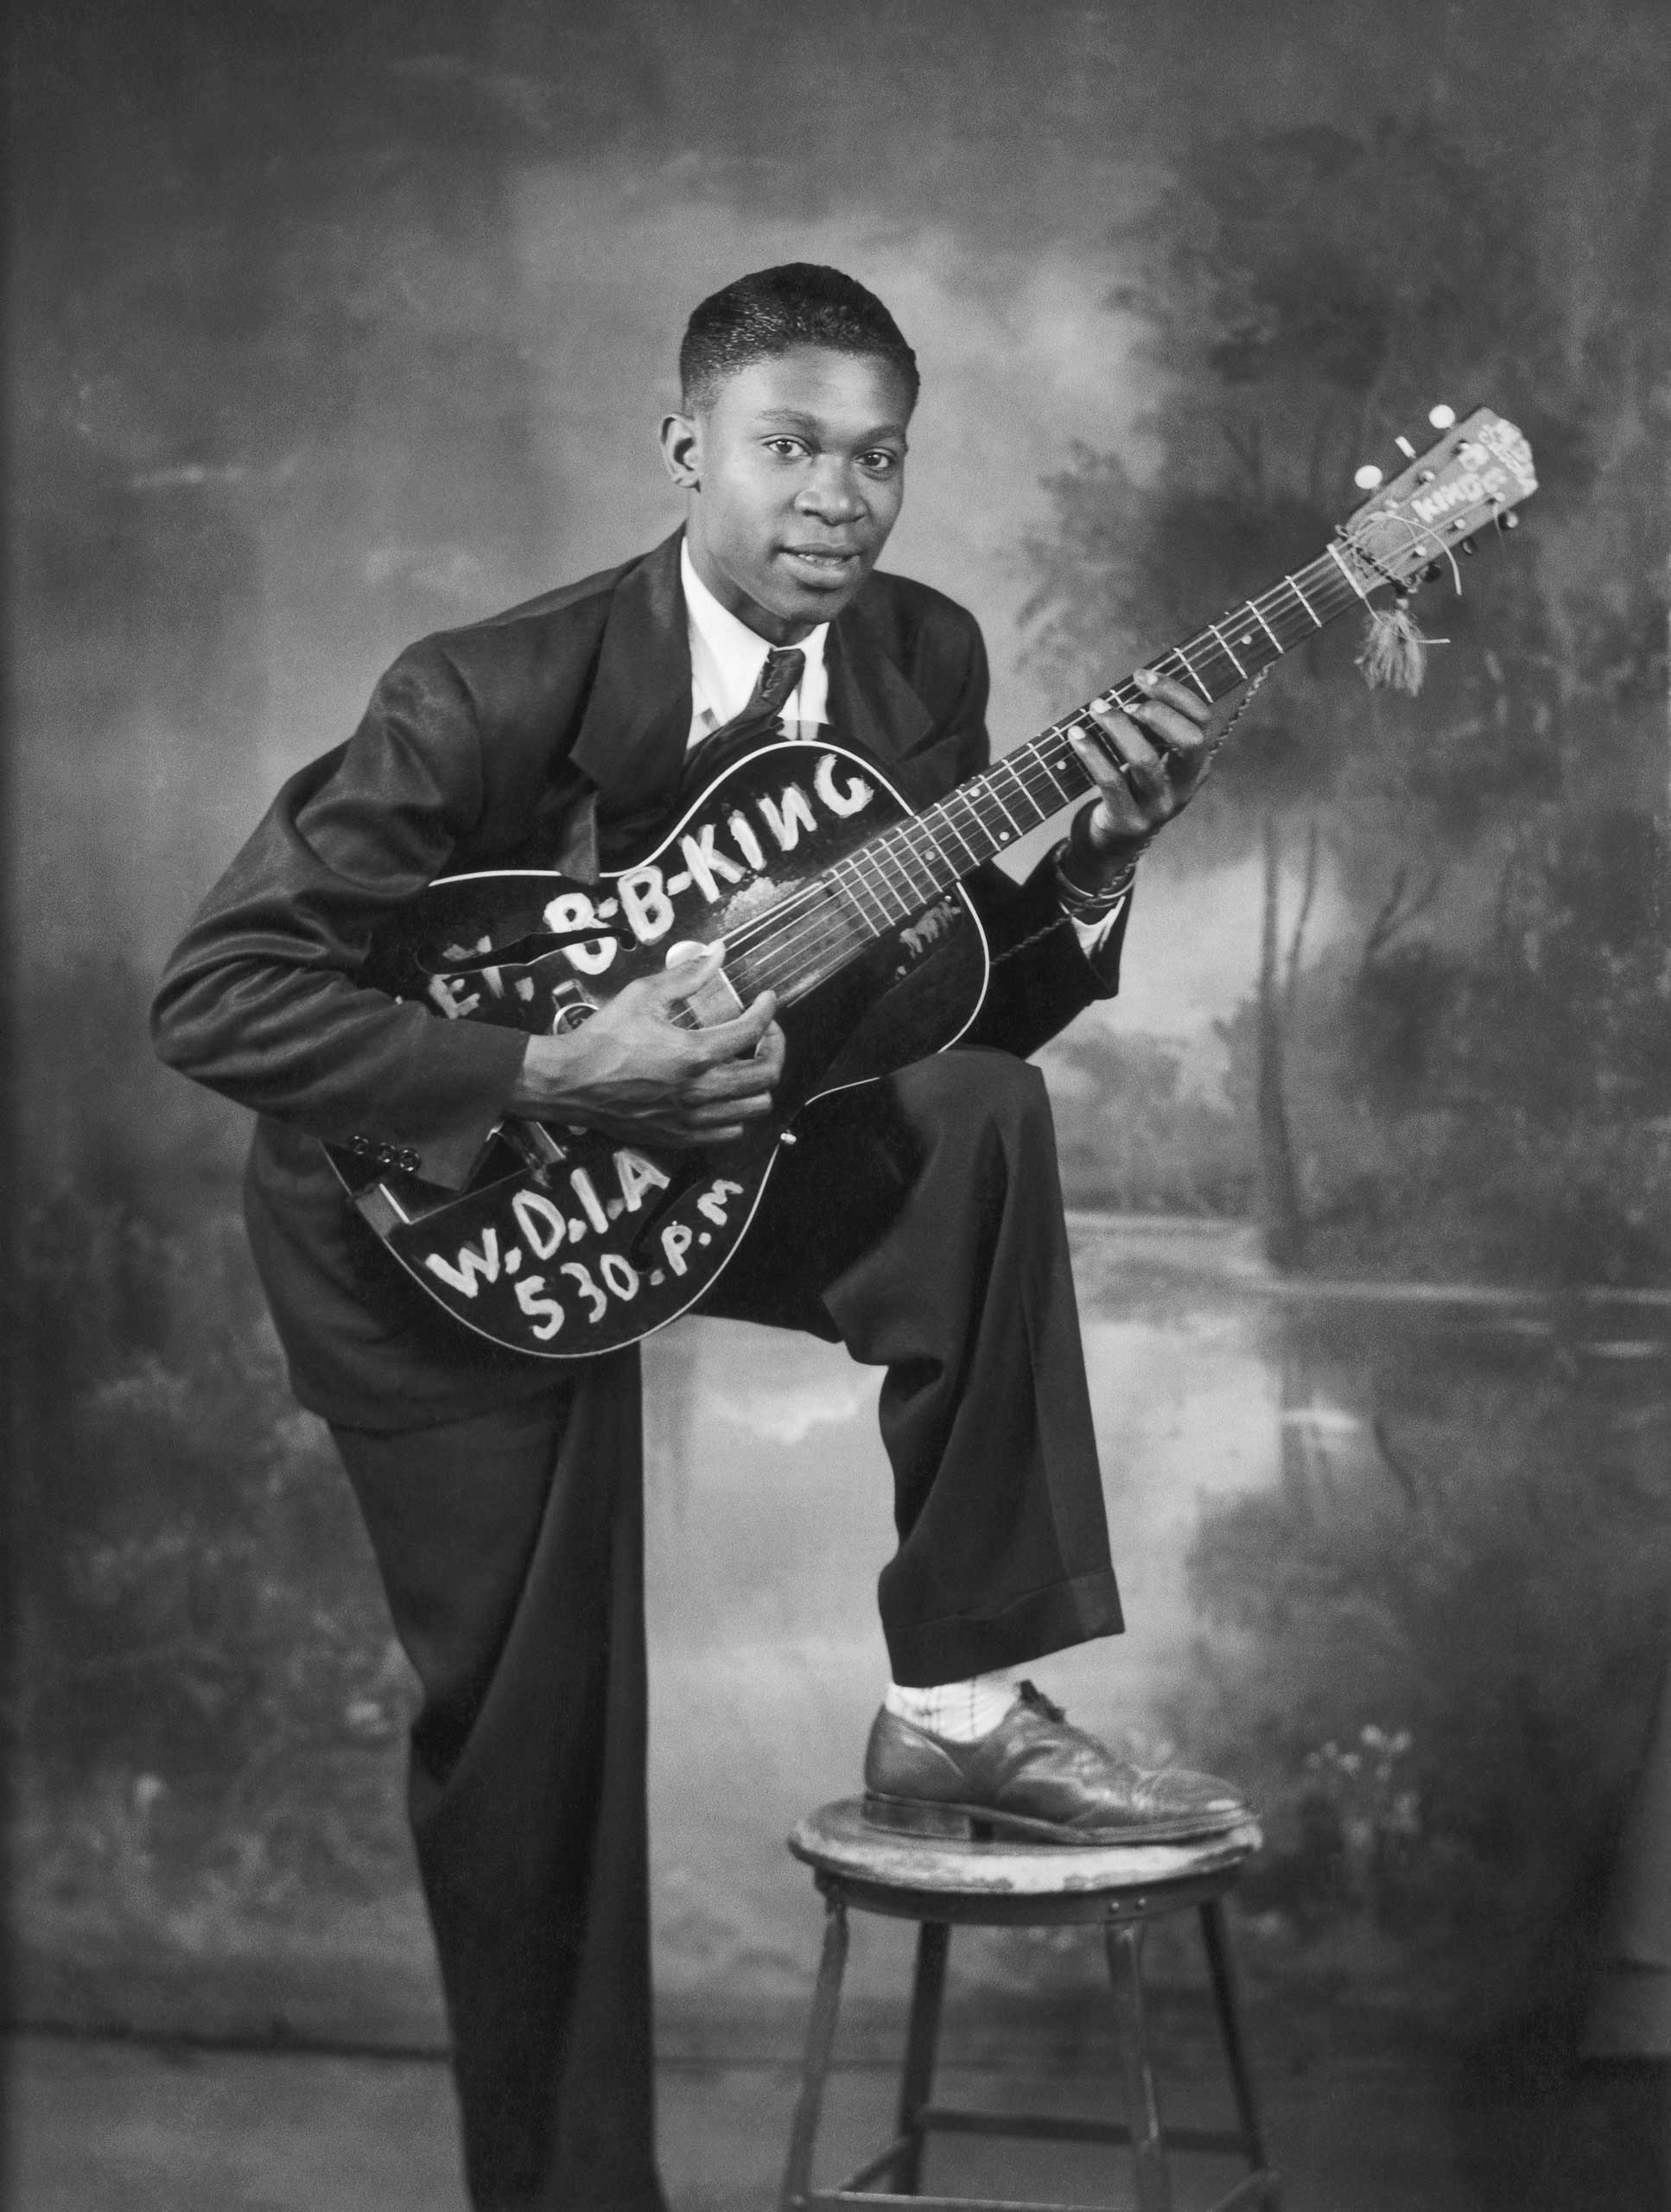 B.B. King a local DJ at WDIA Radio poses for a portrait circa 1948 in Memphis, Tenn.